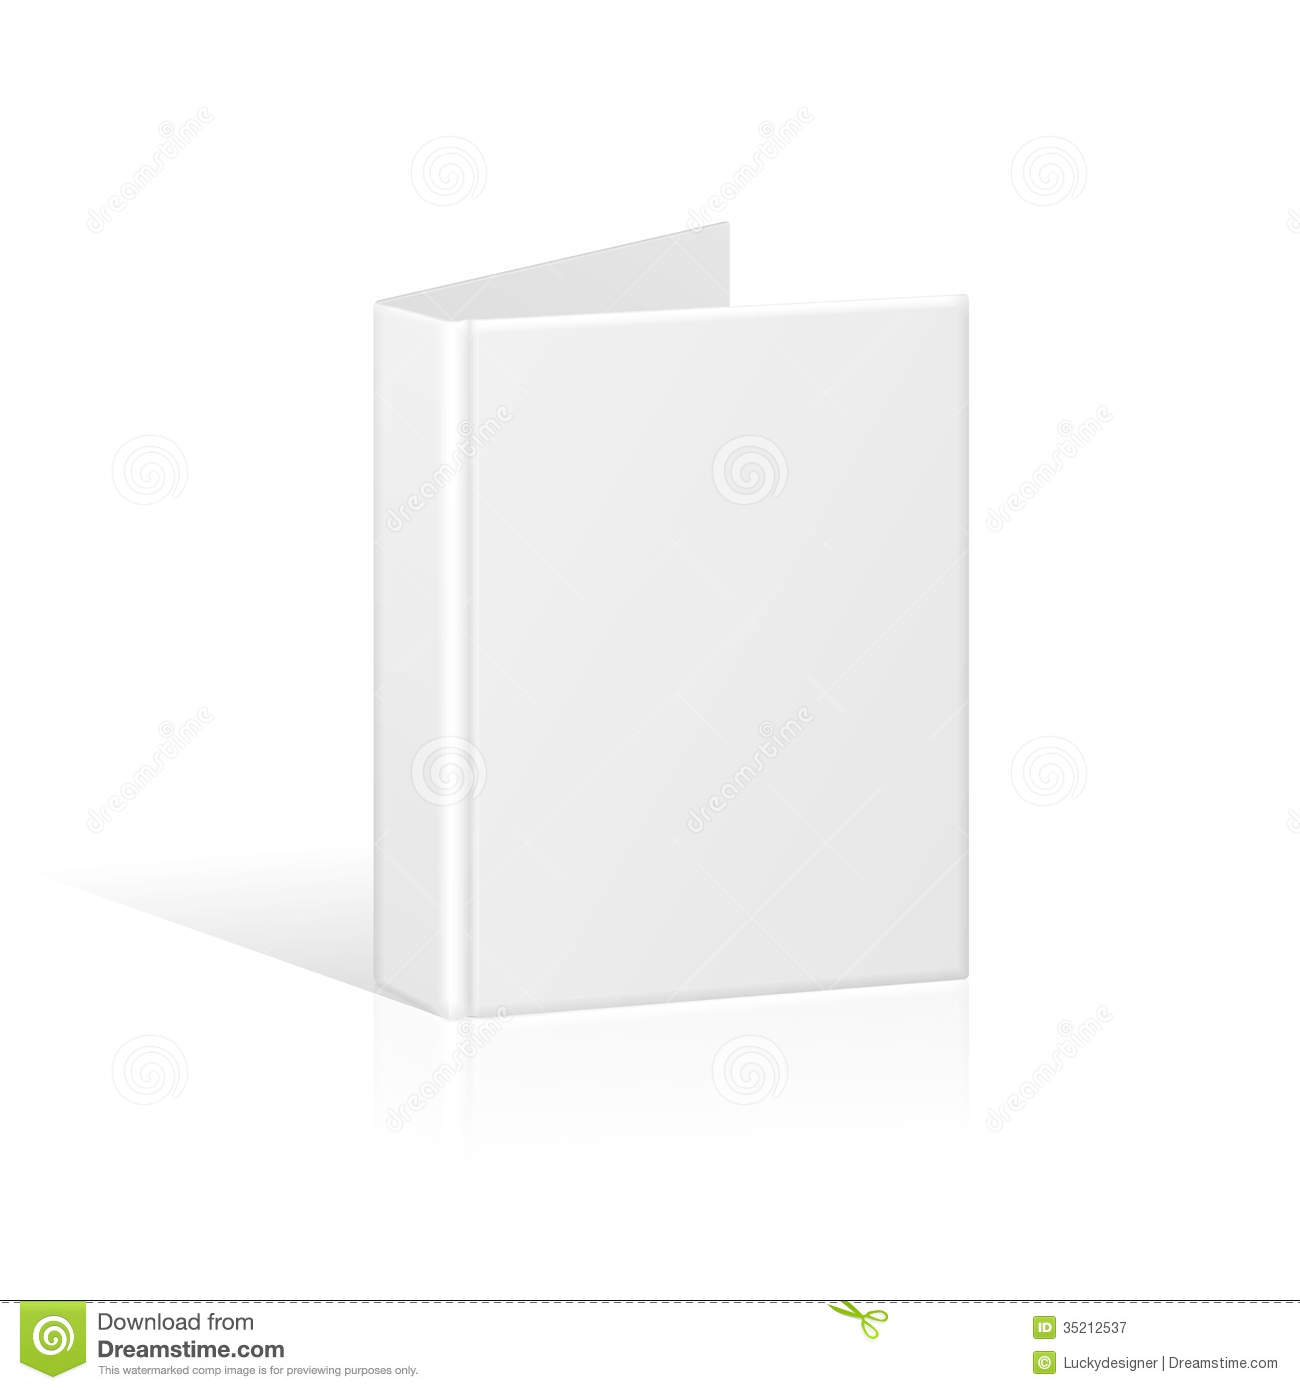 Blank Book Cover Vector Template : Blank book cover binder or folder template royalty free